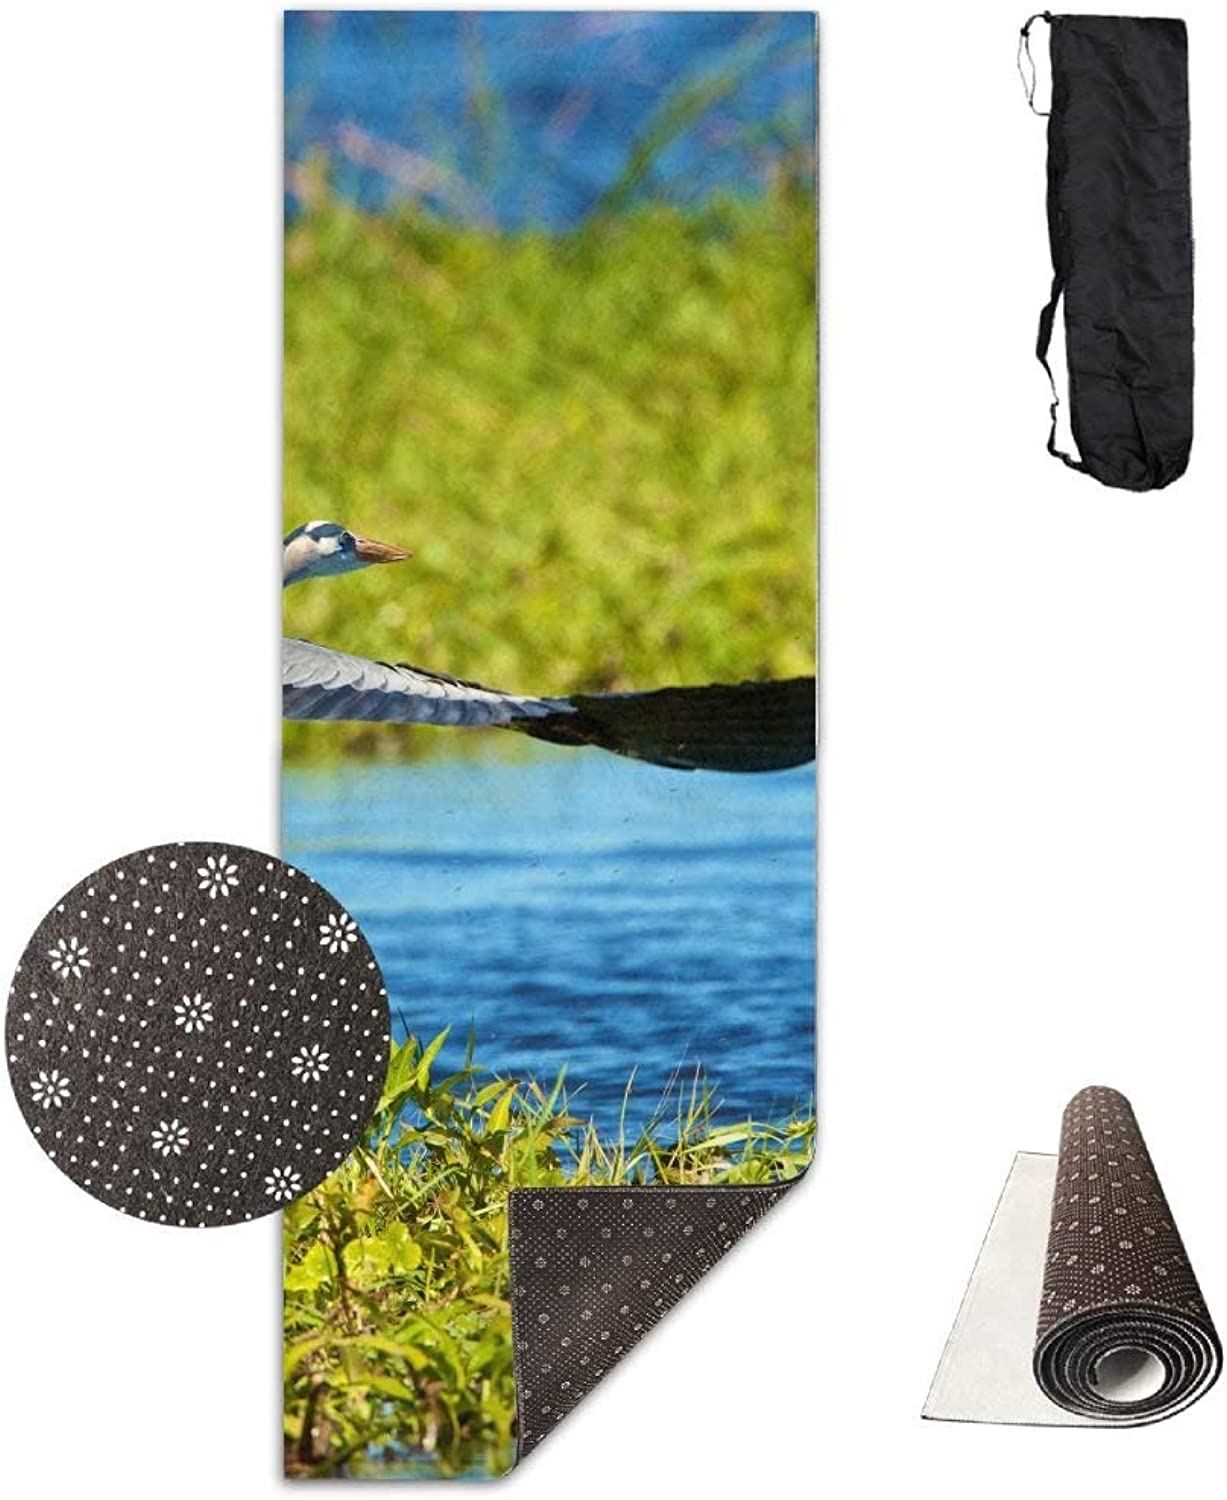 TakeOff Geese Yoga Mat  Advanced Yoga Mat  NonSlip Lining  Easy to Clean  LatexFree  Lightweight and Durable  Long 180 Width 61cm